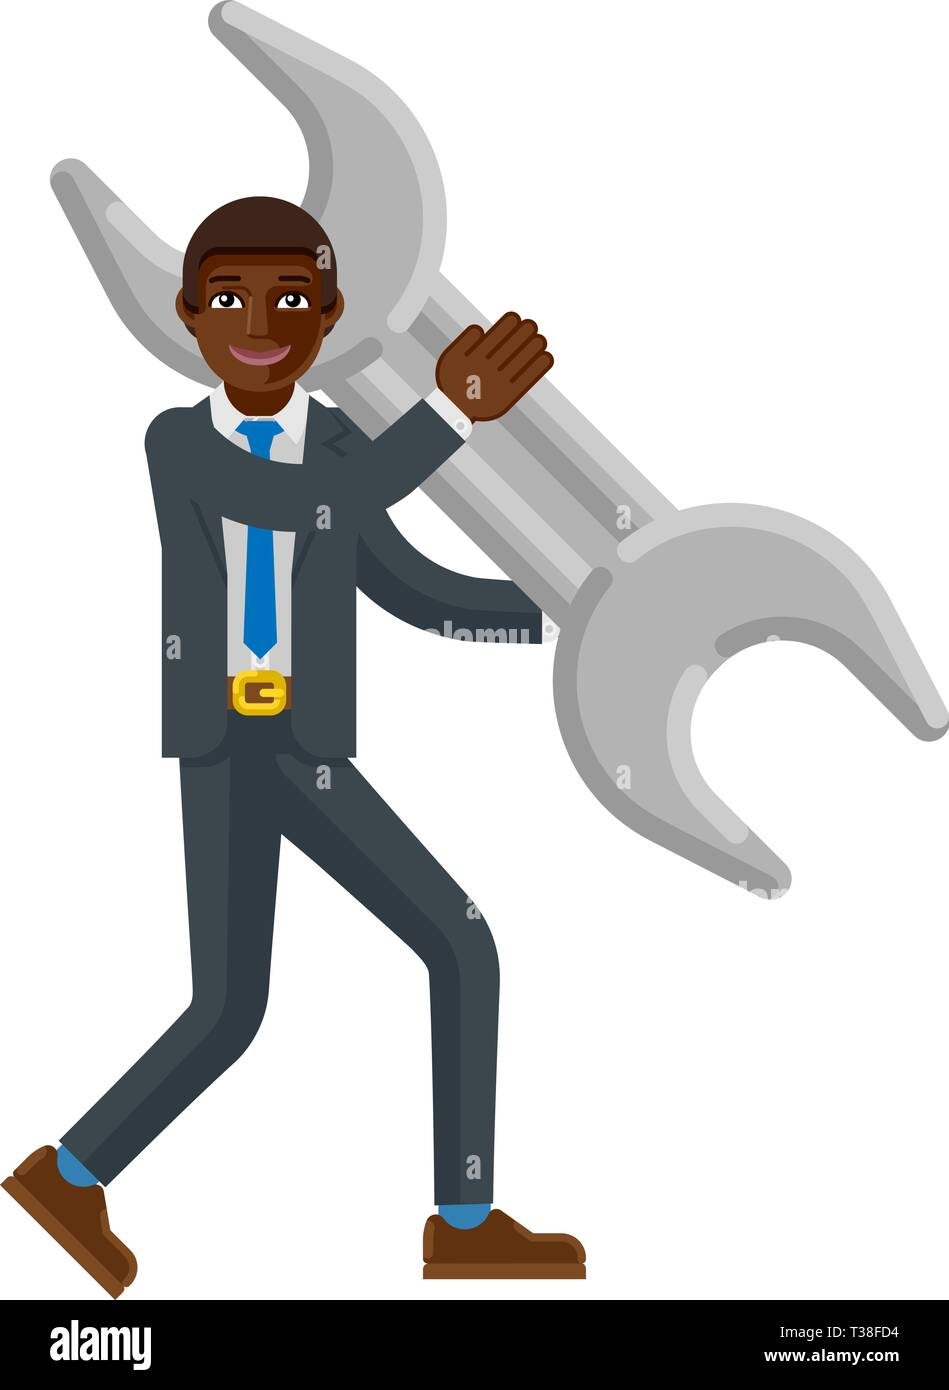 Black Business Man Holding Spanner Wrench Mascot - Stock Image